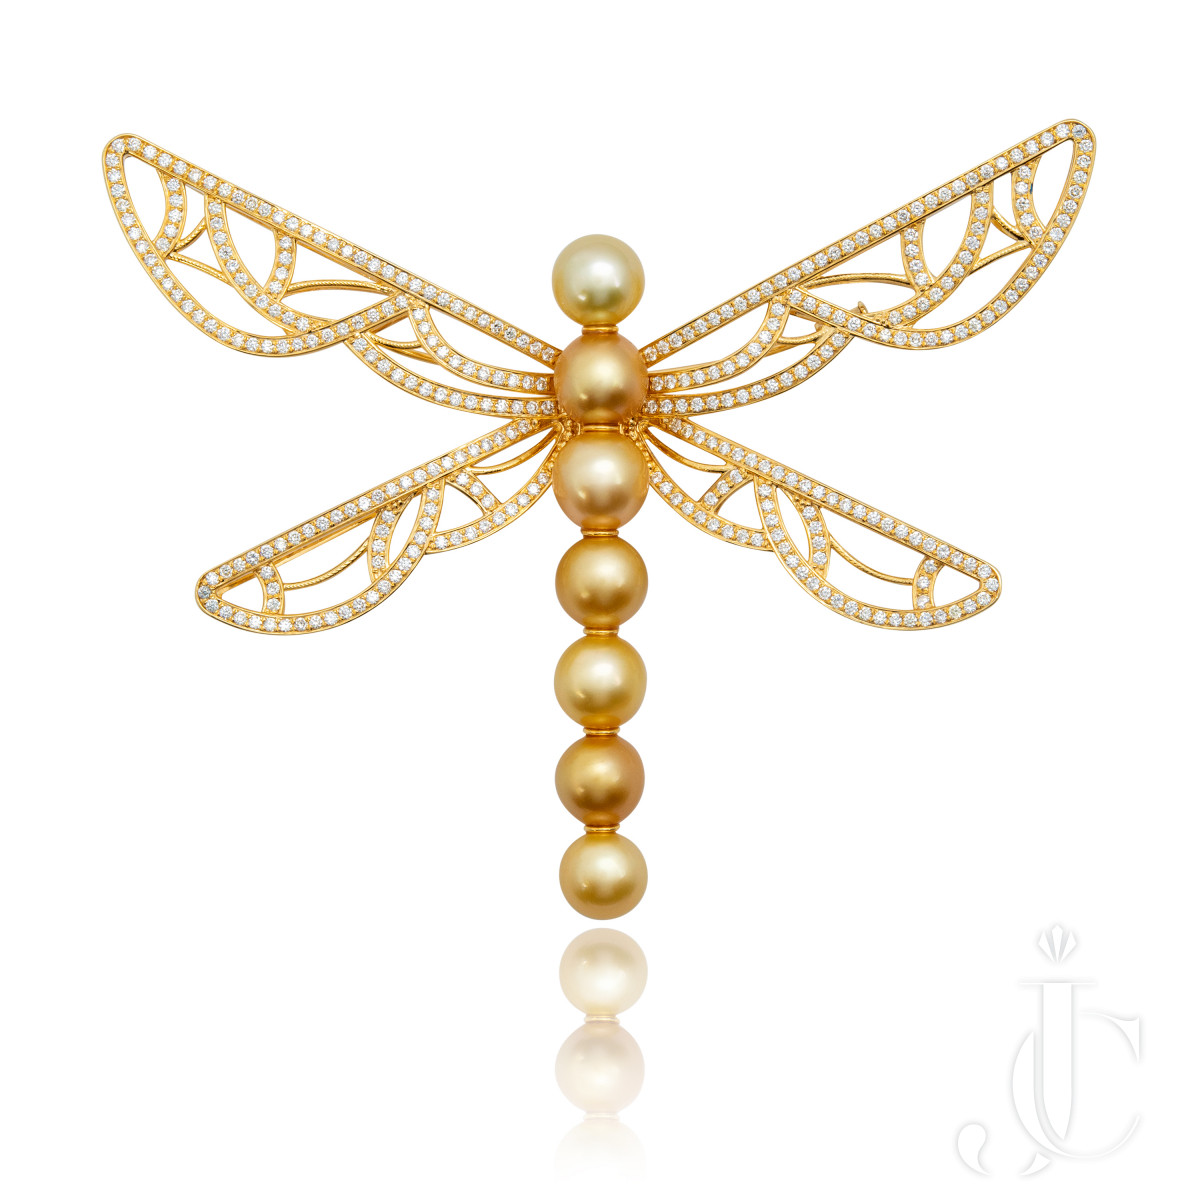 An Order of Bling Golden South Sea Pearl and Diamond Brooch and Pendant